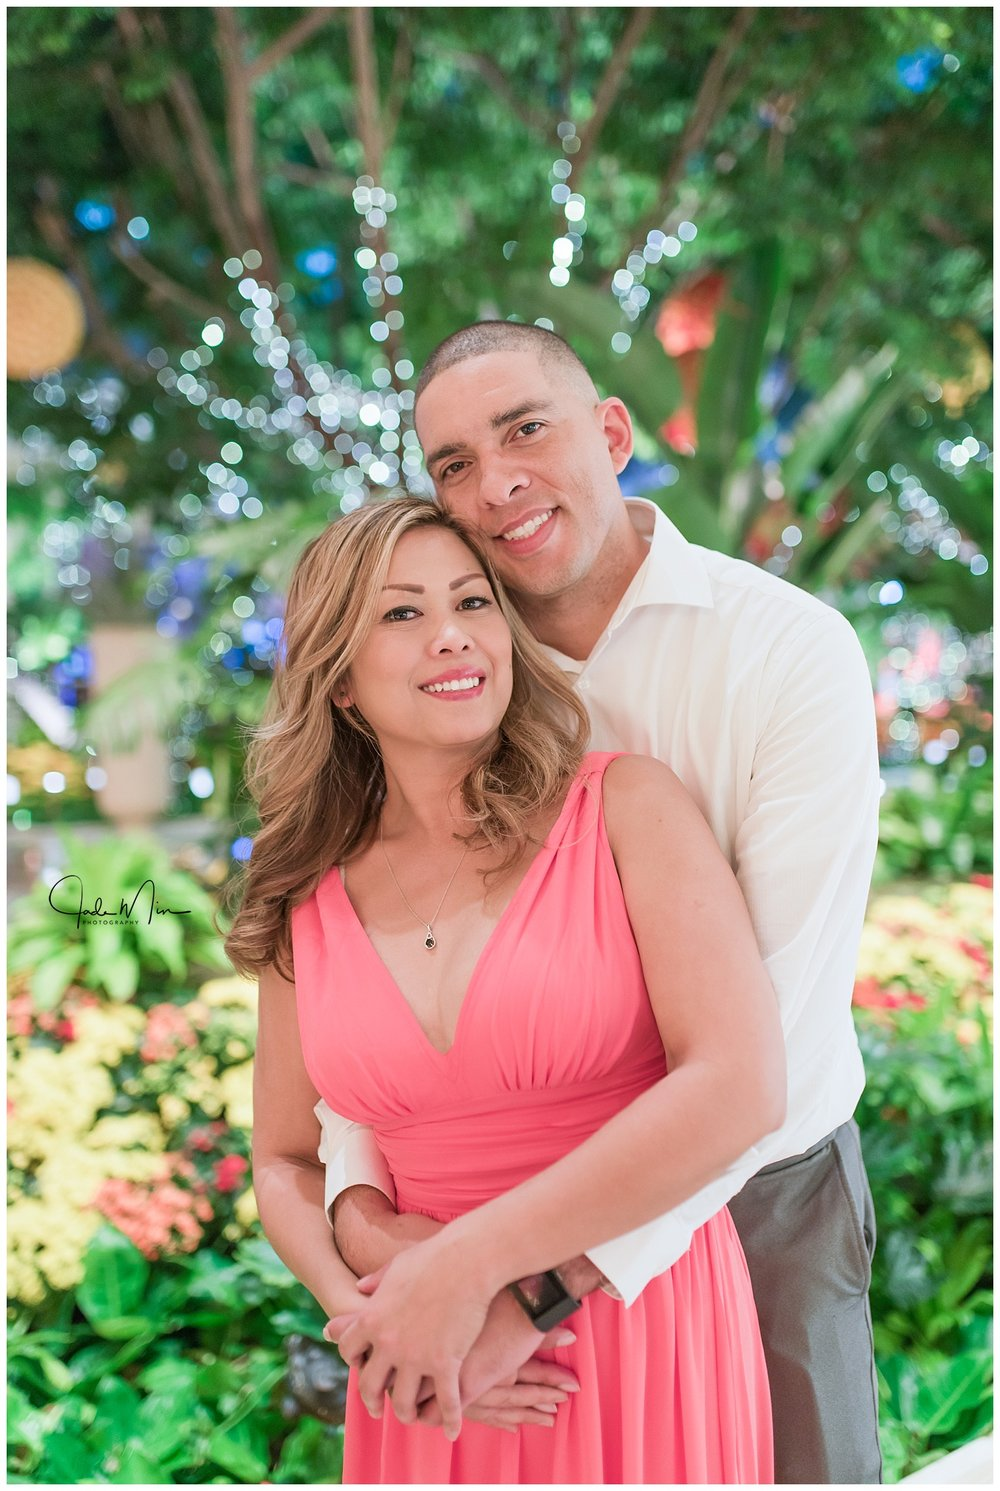 Couples photo session at the Wynn Las Vegas.